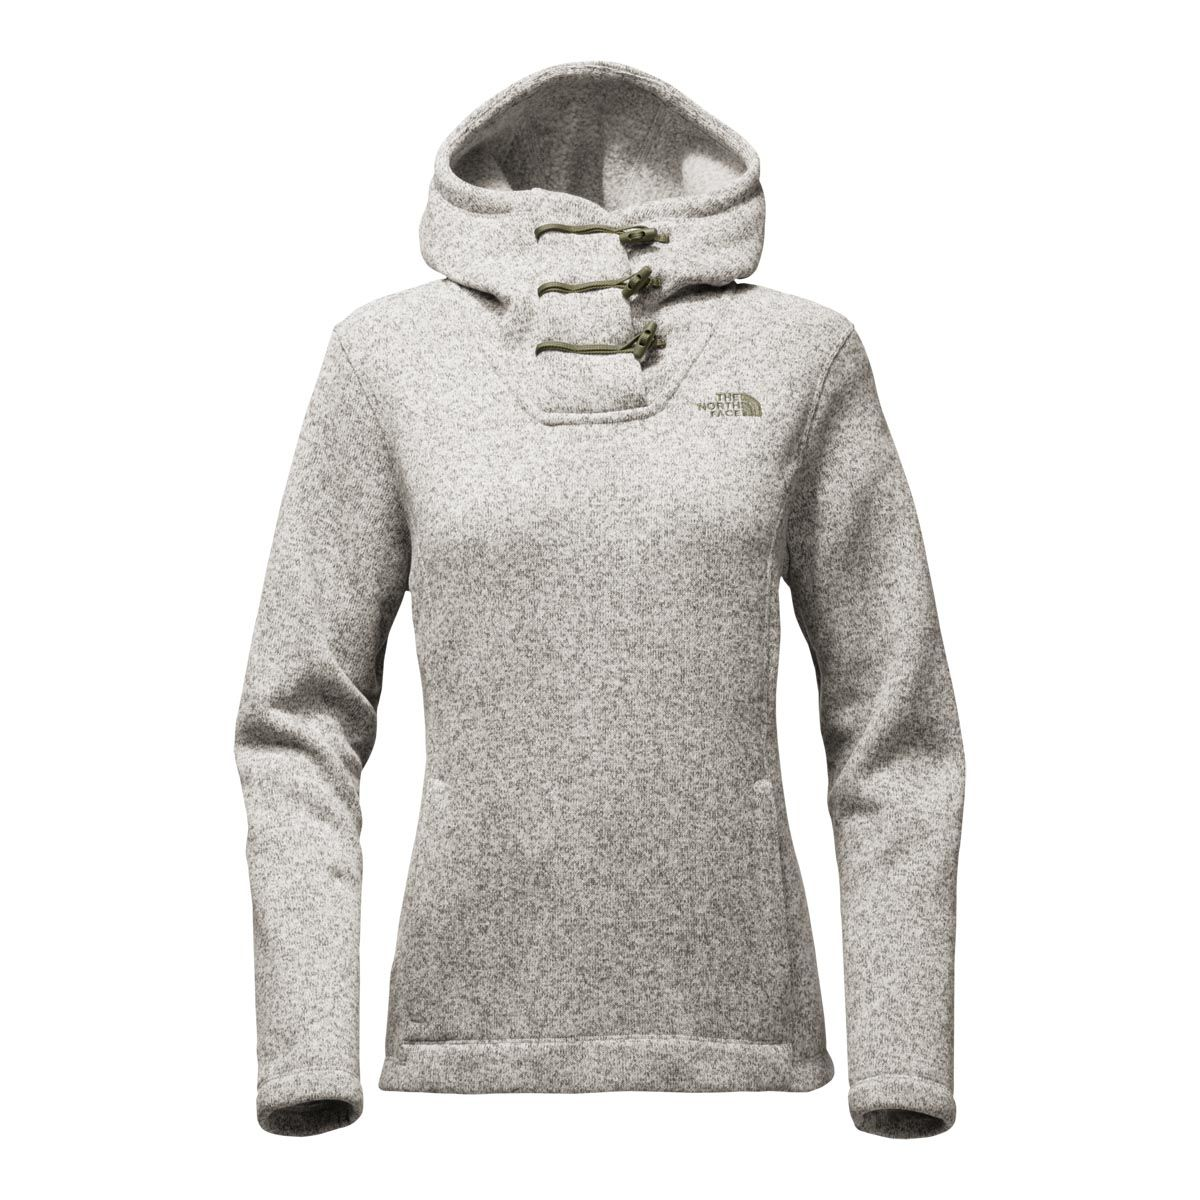 a5ca98454 Women's Crescent Hooded Pullover - Past Season | Styled | Winter ...